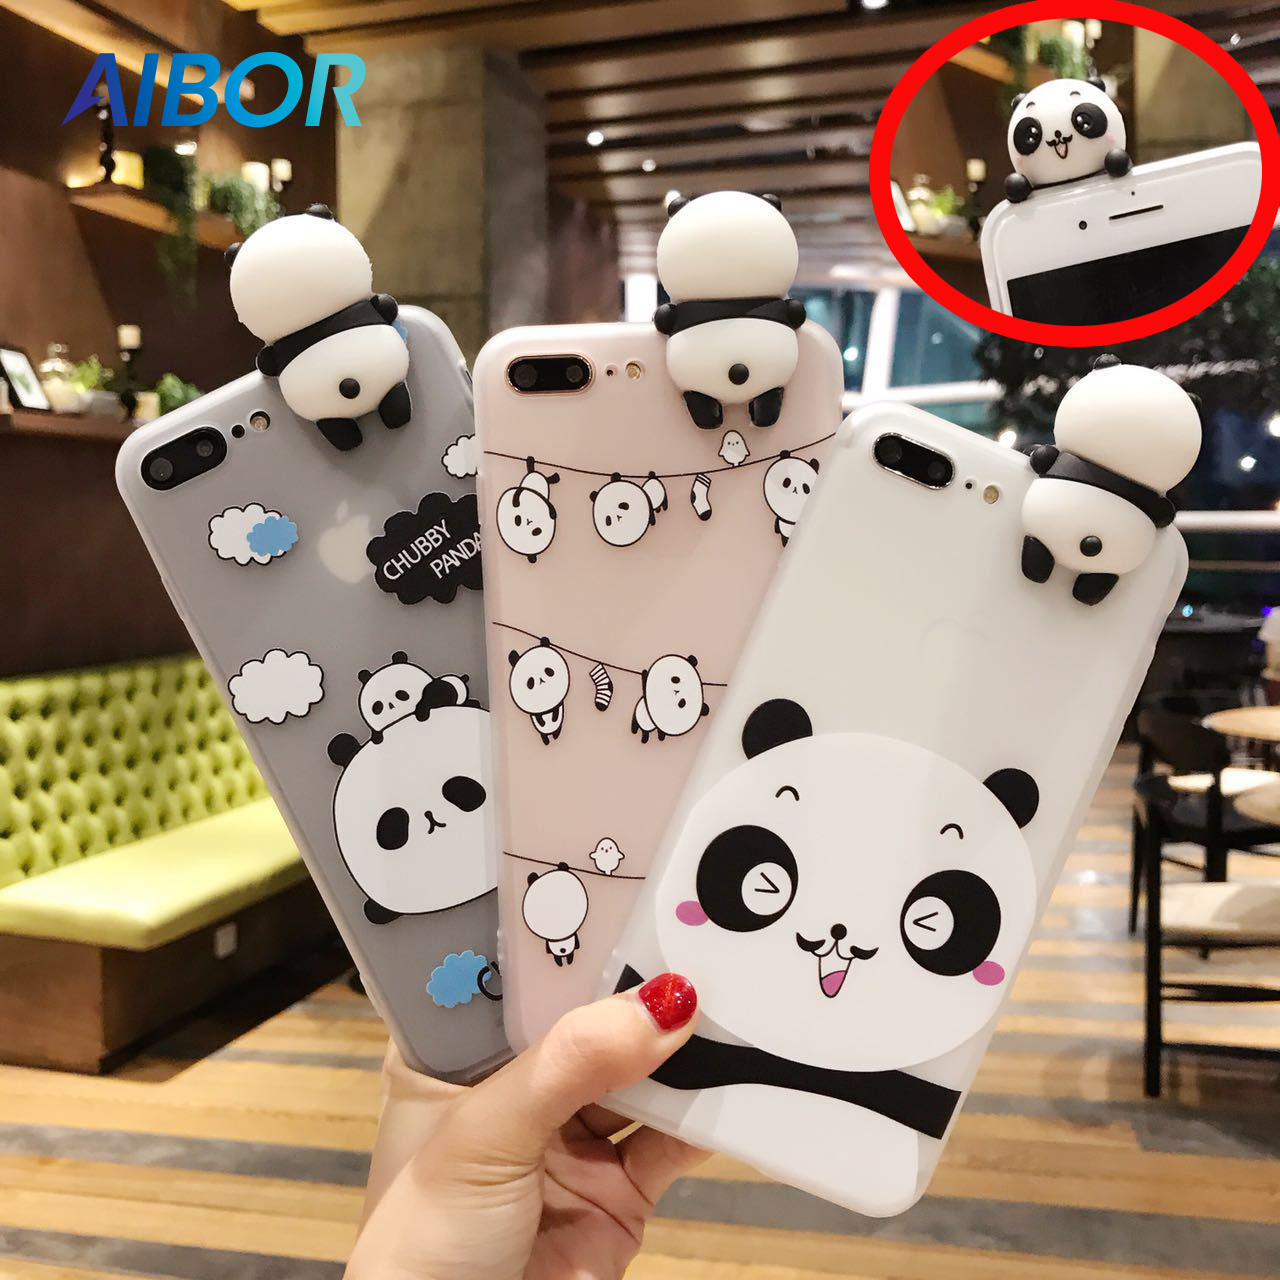 3D Cute China Panda Cases For iphone X  XS MAX XR 5 5s SE 7 7 8 6 6s Plus Case Lovely Toy Panda Cover Transparent For iphone 7 8 iPhone